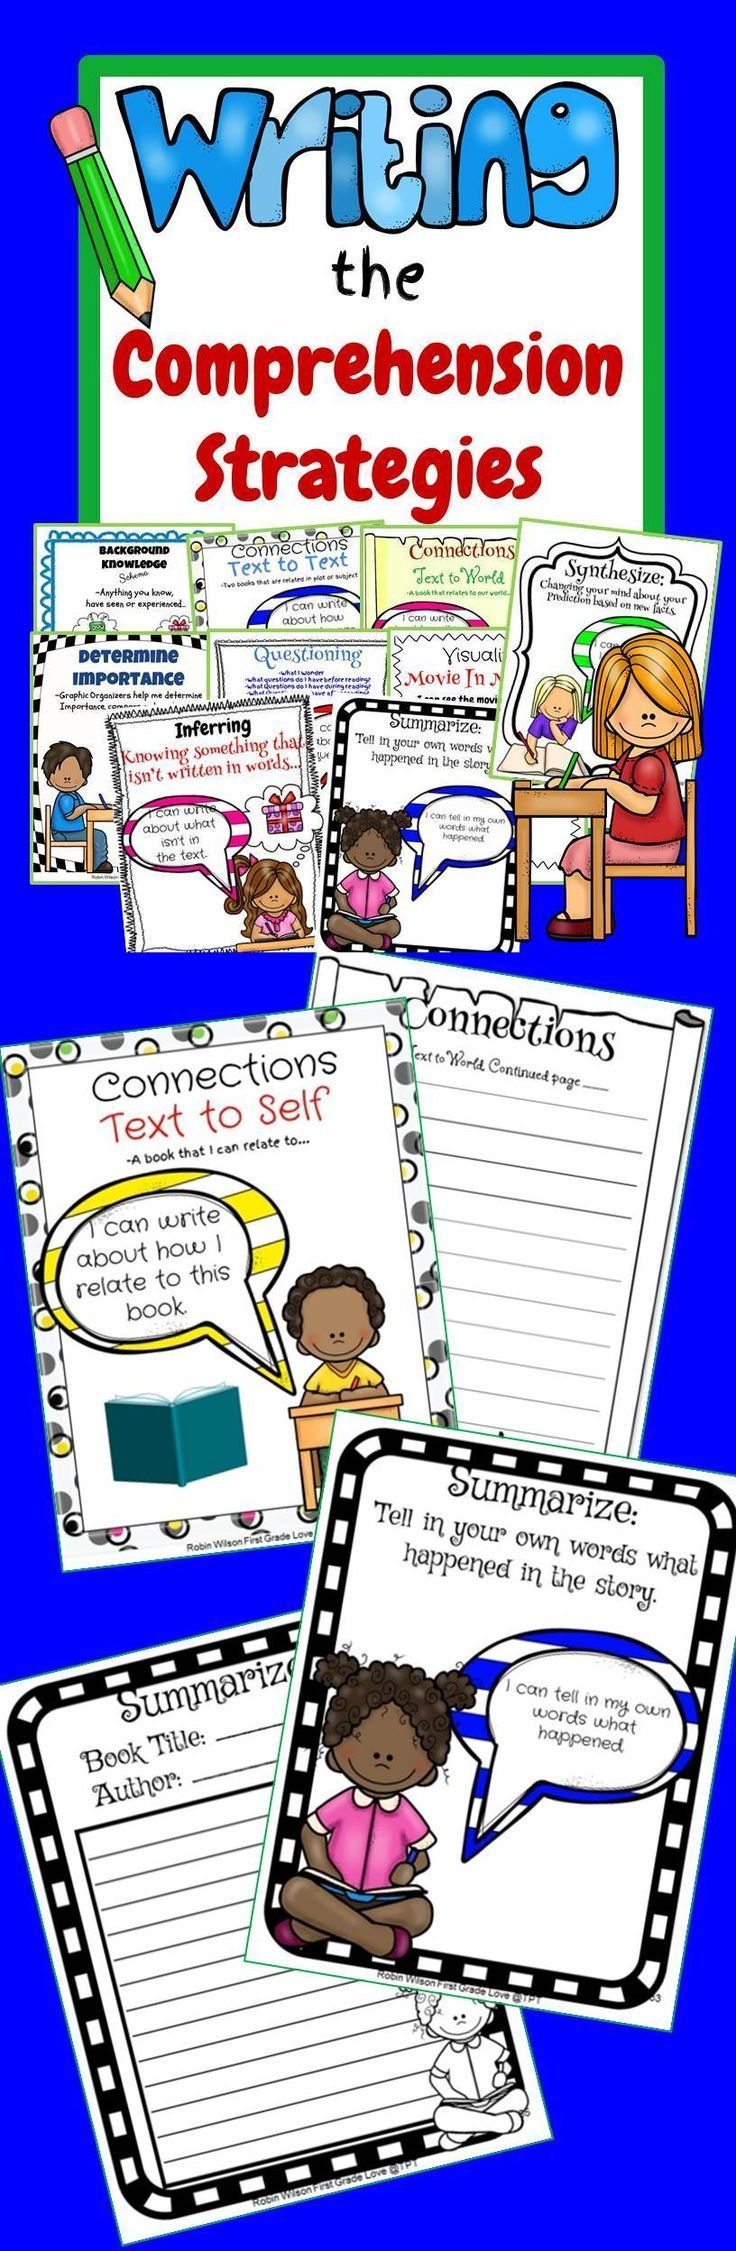 The comprehension strategies help students make sense of text. Being able to continue that into your writing will help solidify your literacy program.